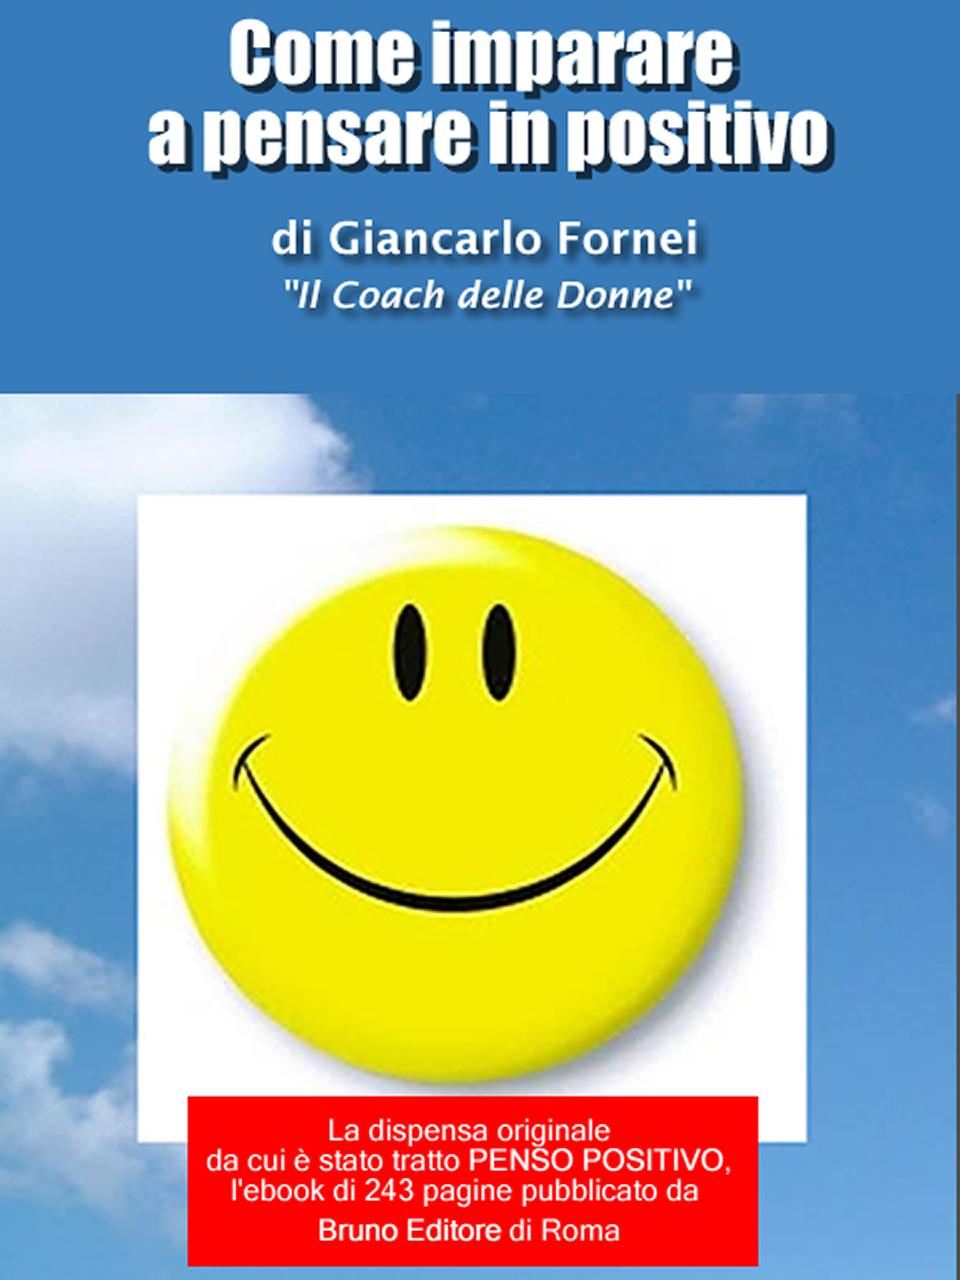 Mailing List di Giancarlo Fornei